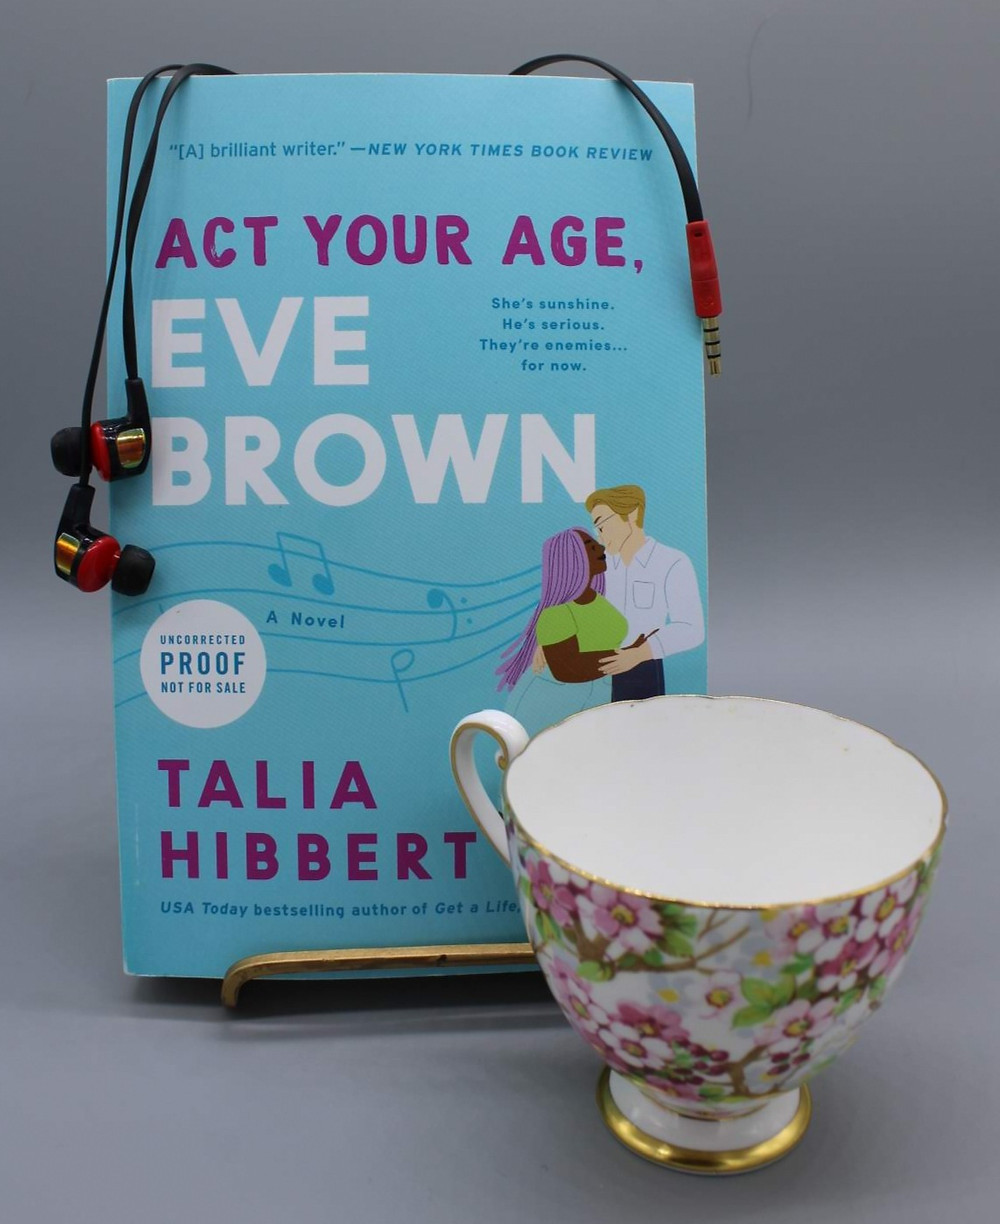 The book Act Your Age, Eve Brown by Talia Hibbert is sitting upright in a gold bookstand in front of a grey background. There is a pink flower decorated teacup in front of the book's lower right corner and a pair of red and black corded earbuds draped across the top of the book.